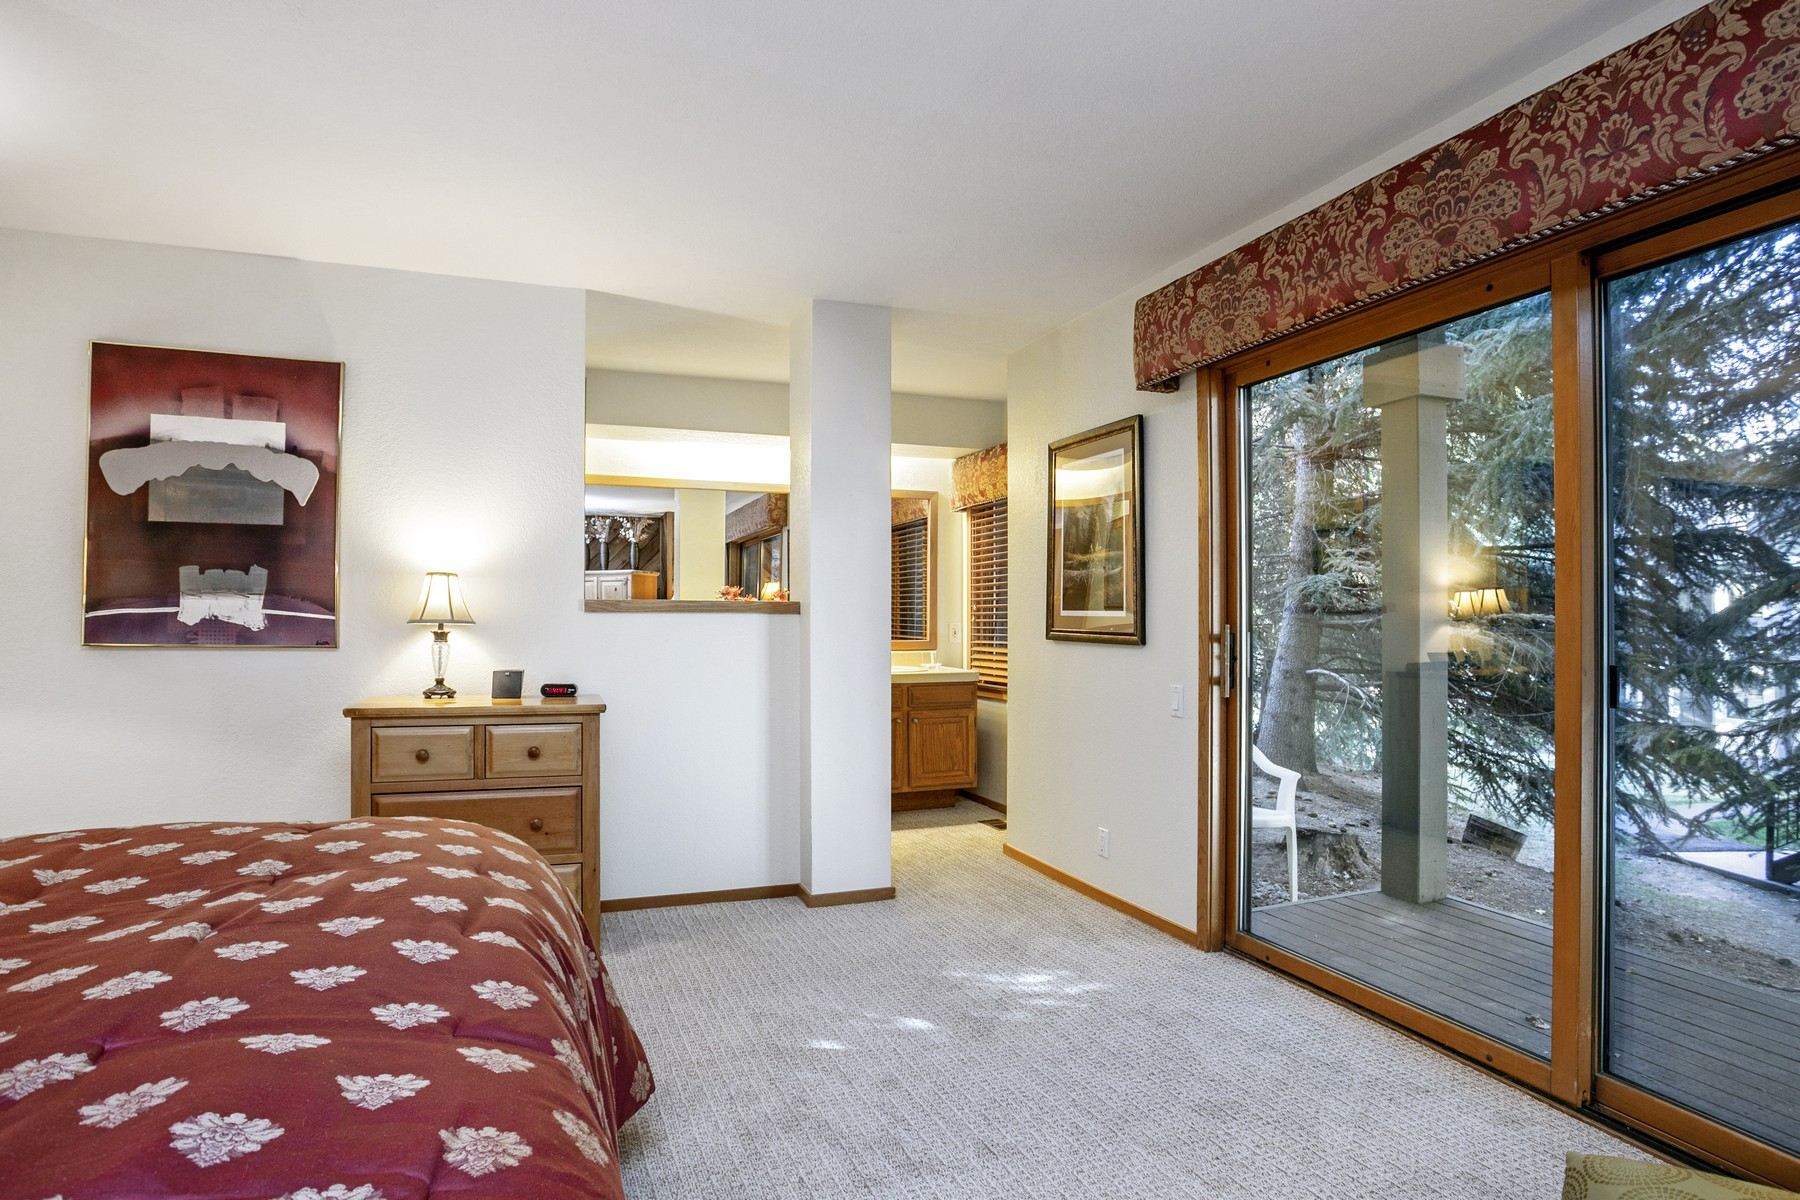 Additional photo for property listing at Ridgepoint #149 149 Willis Place #149 Beaver Creek, Colorado 81620 United States